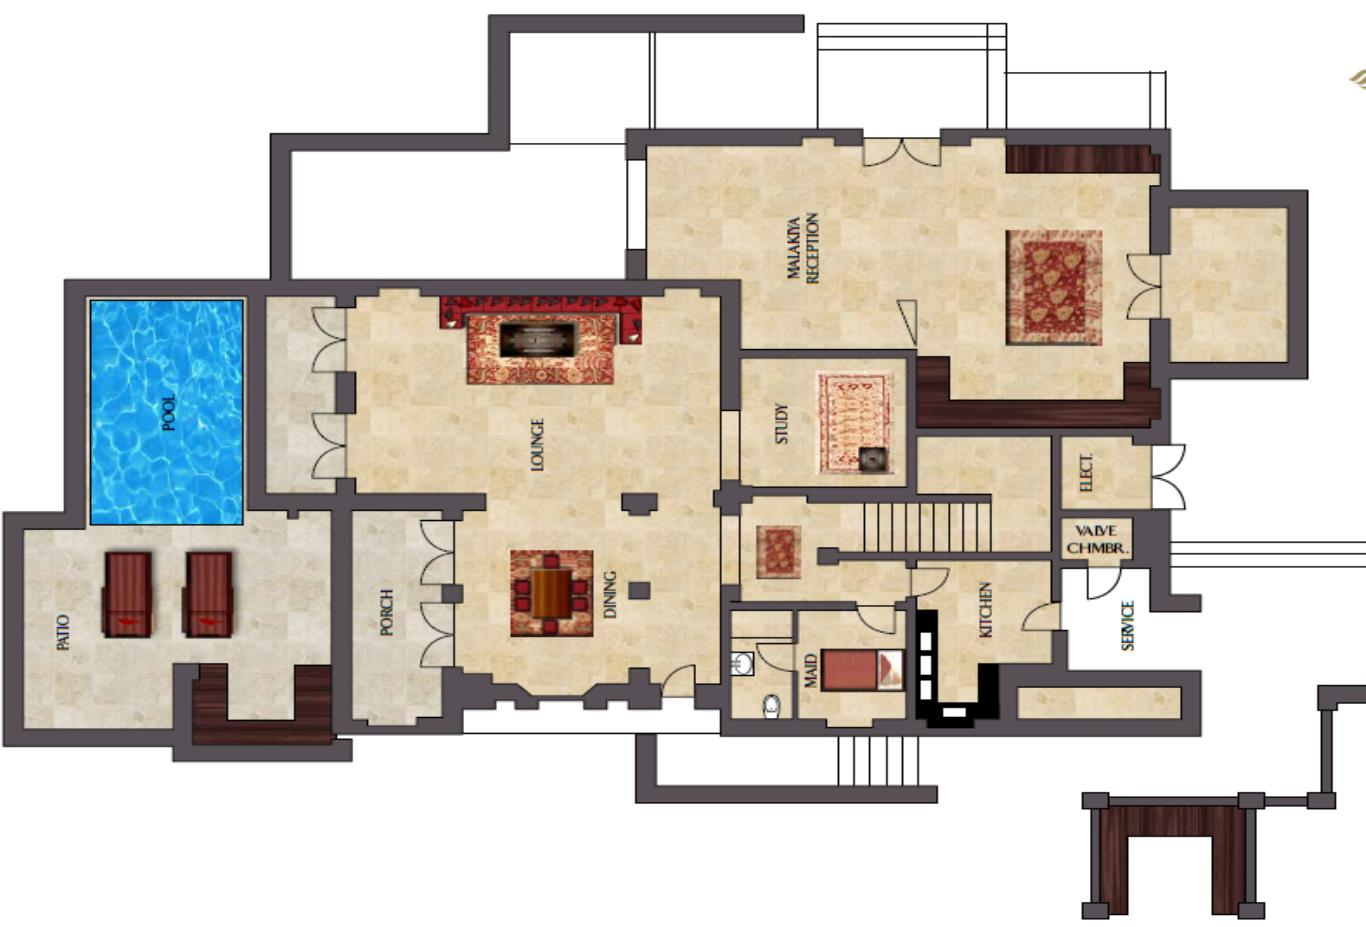 Floorplan-ground-floor-Two-bed-villa